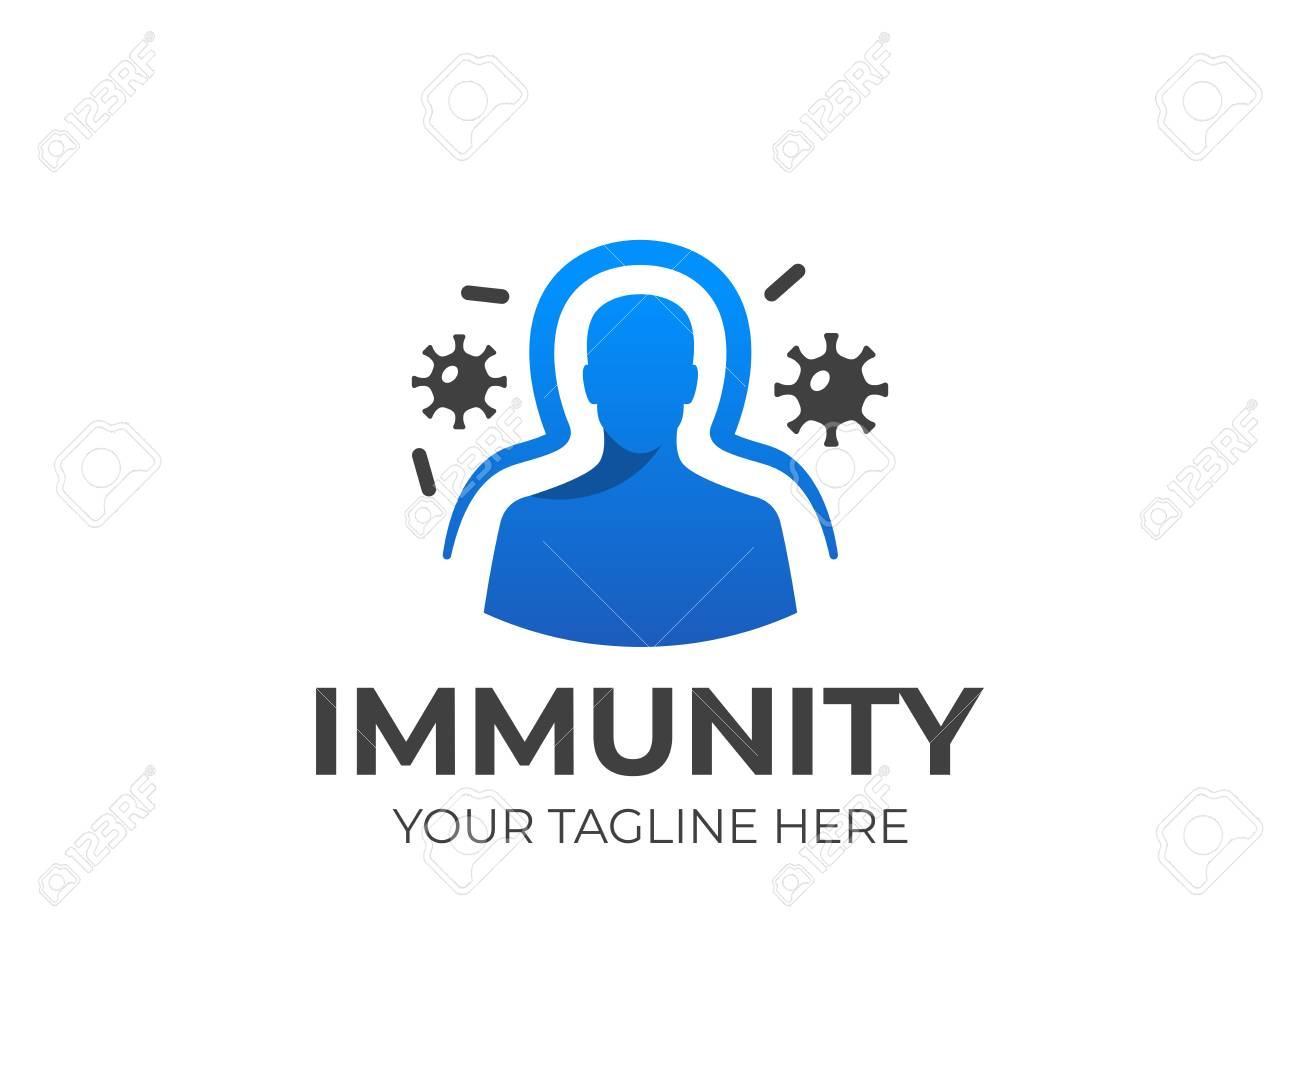 Human immune system vector design with virus and bacteria illustration. - 96450468